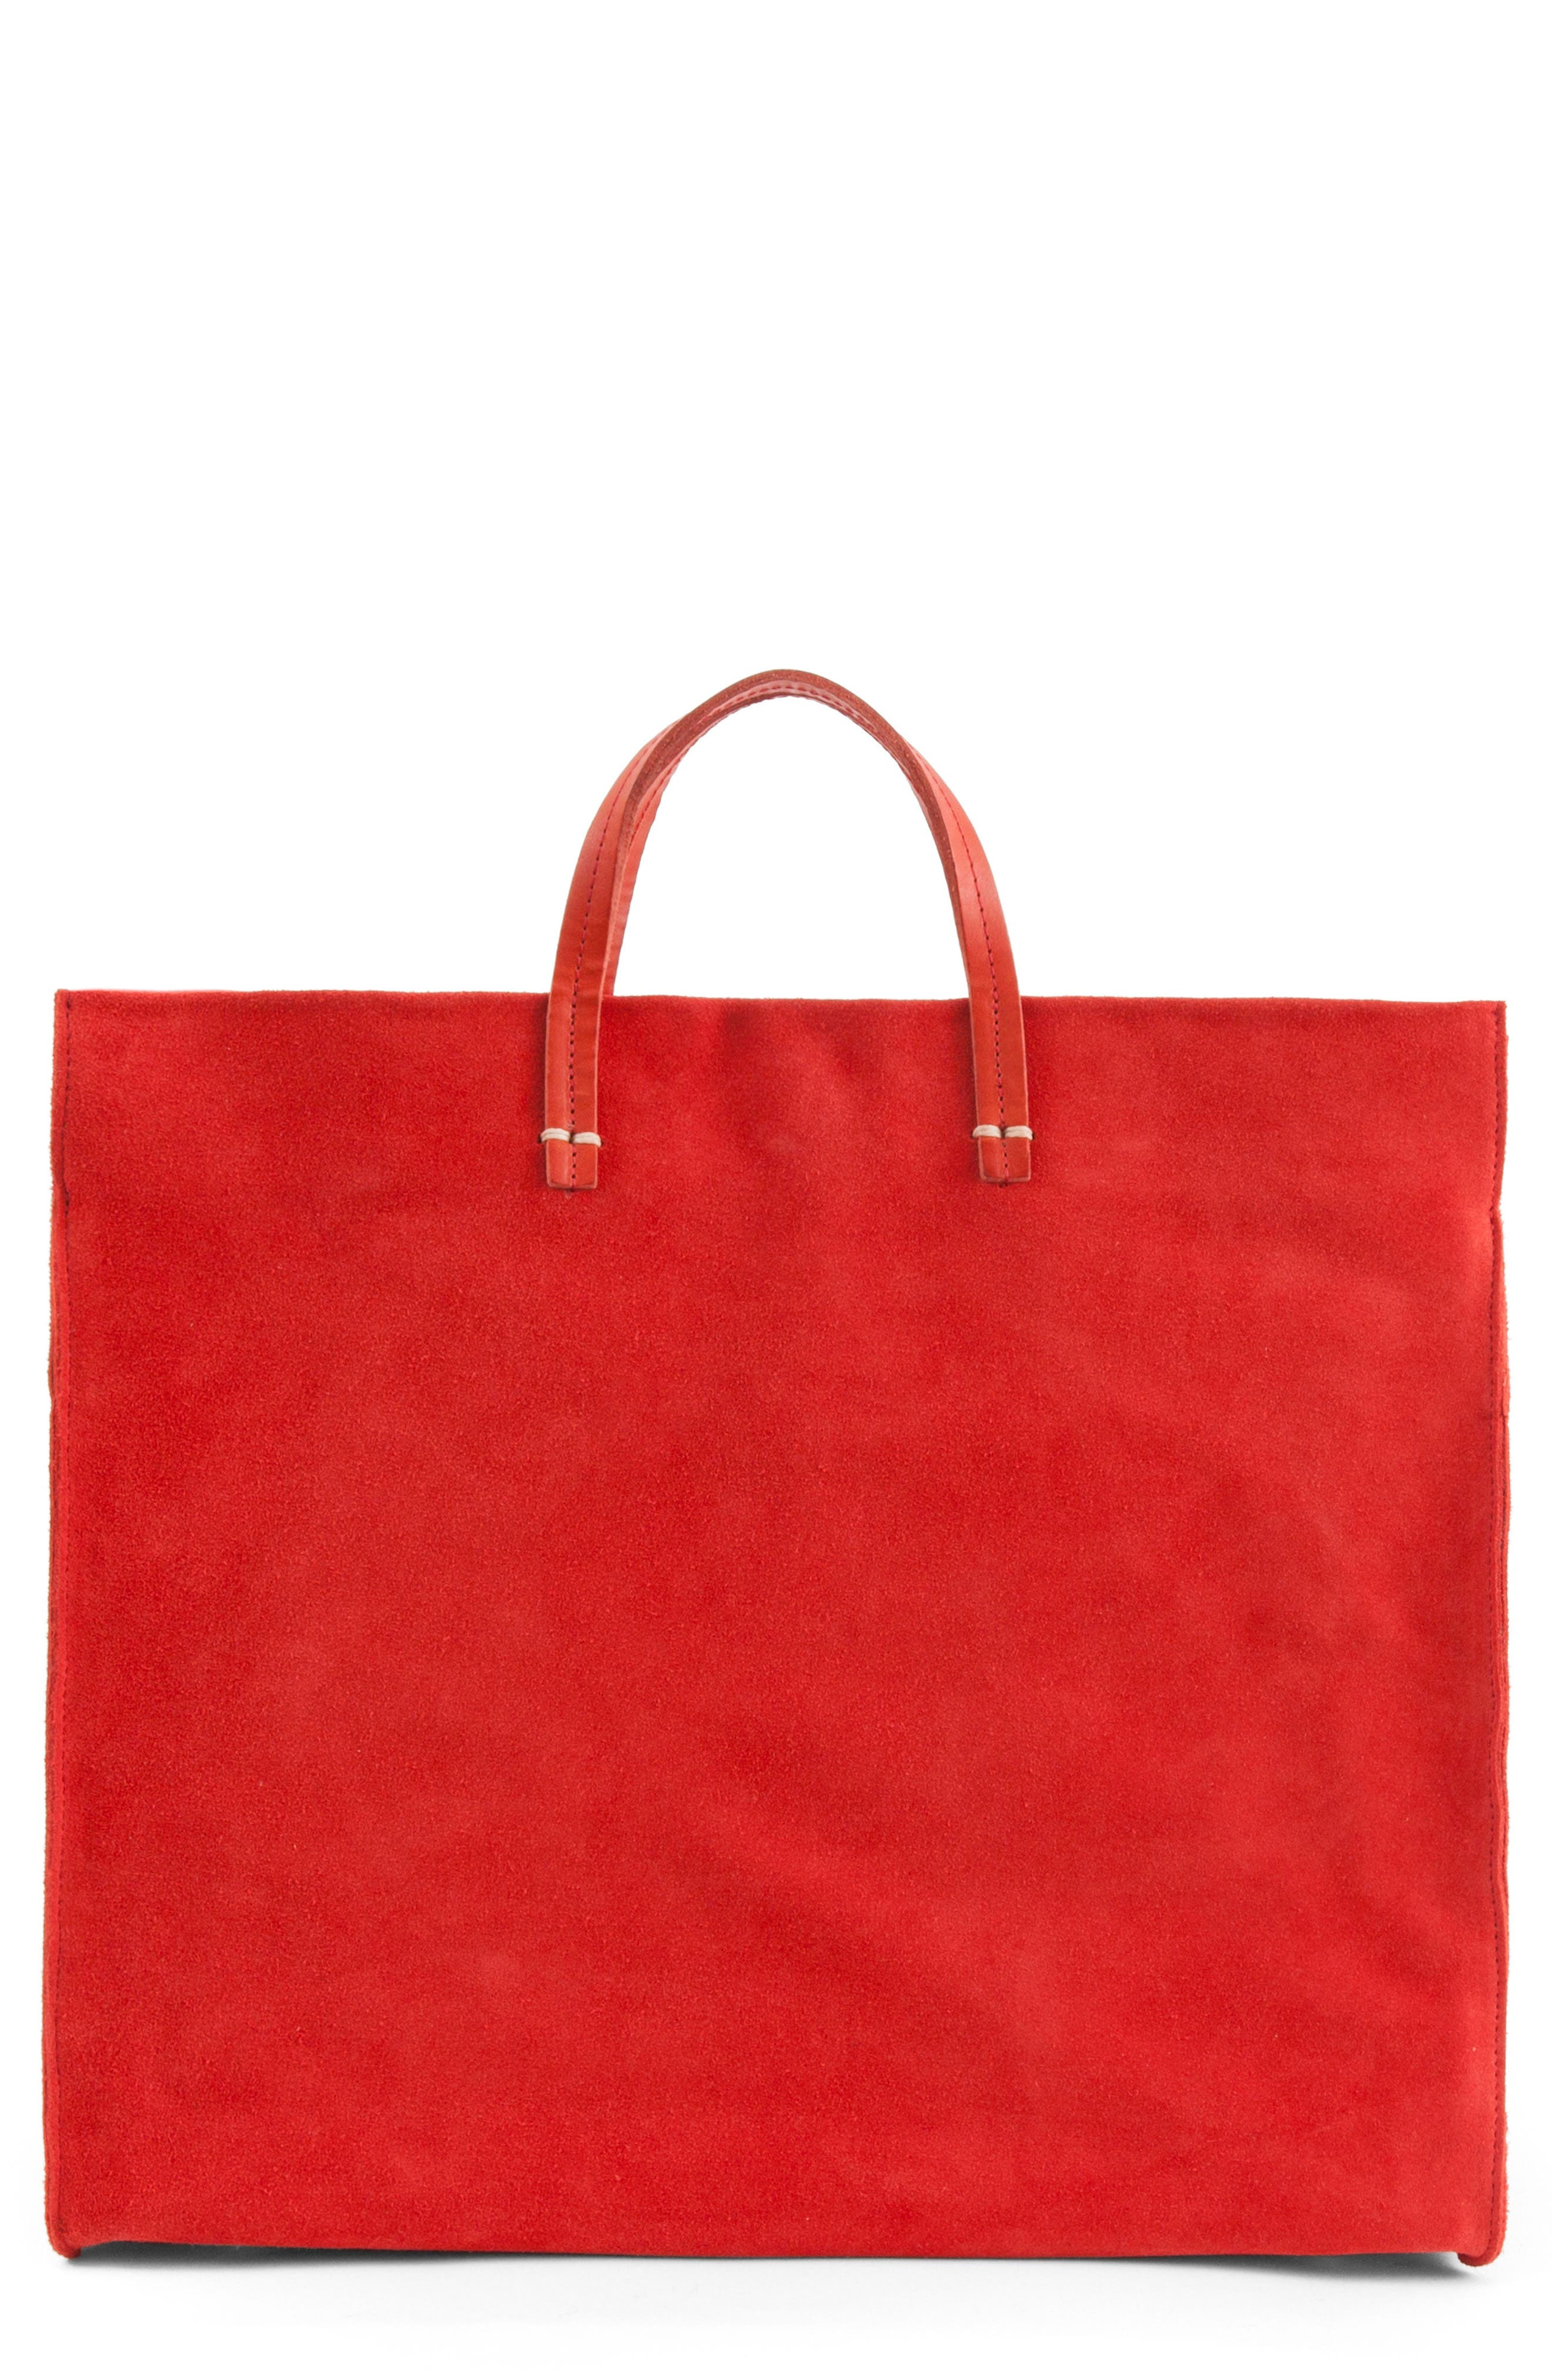 Main Image - Clare V. Maison Simple Suede Tote